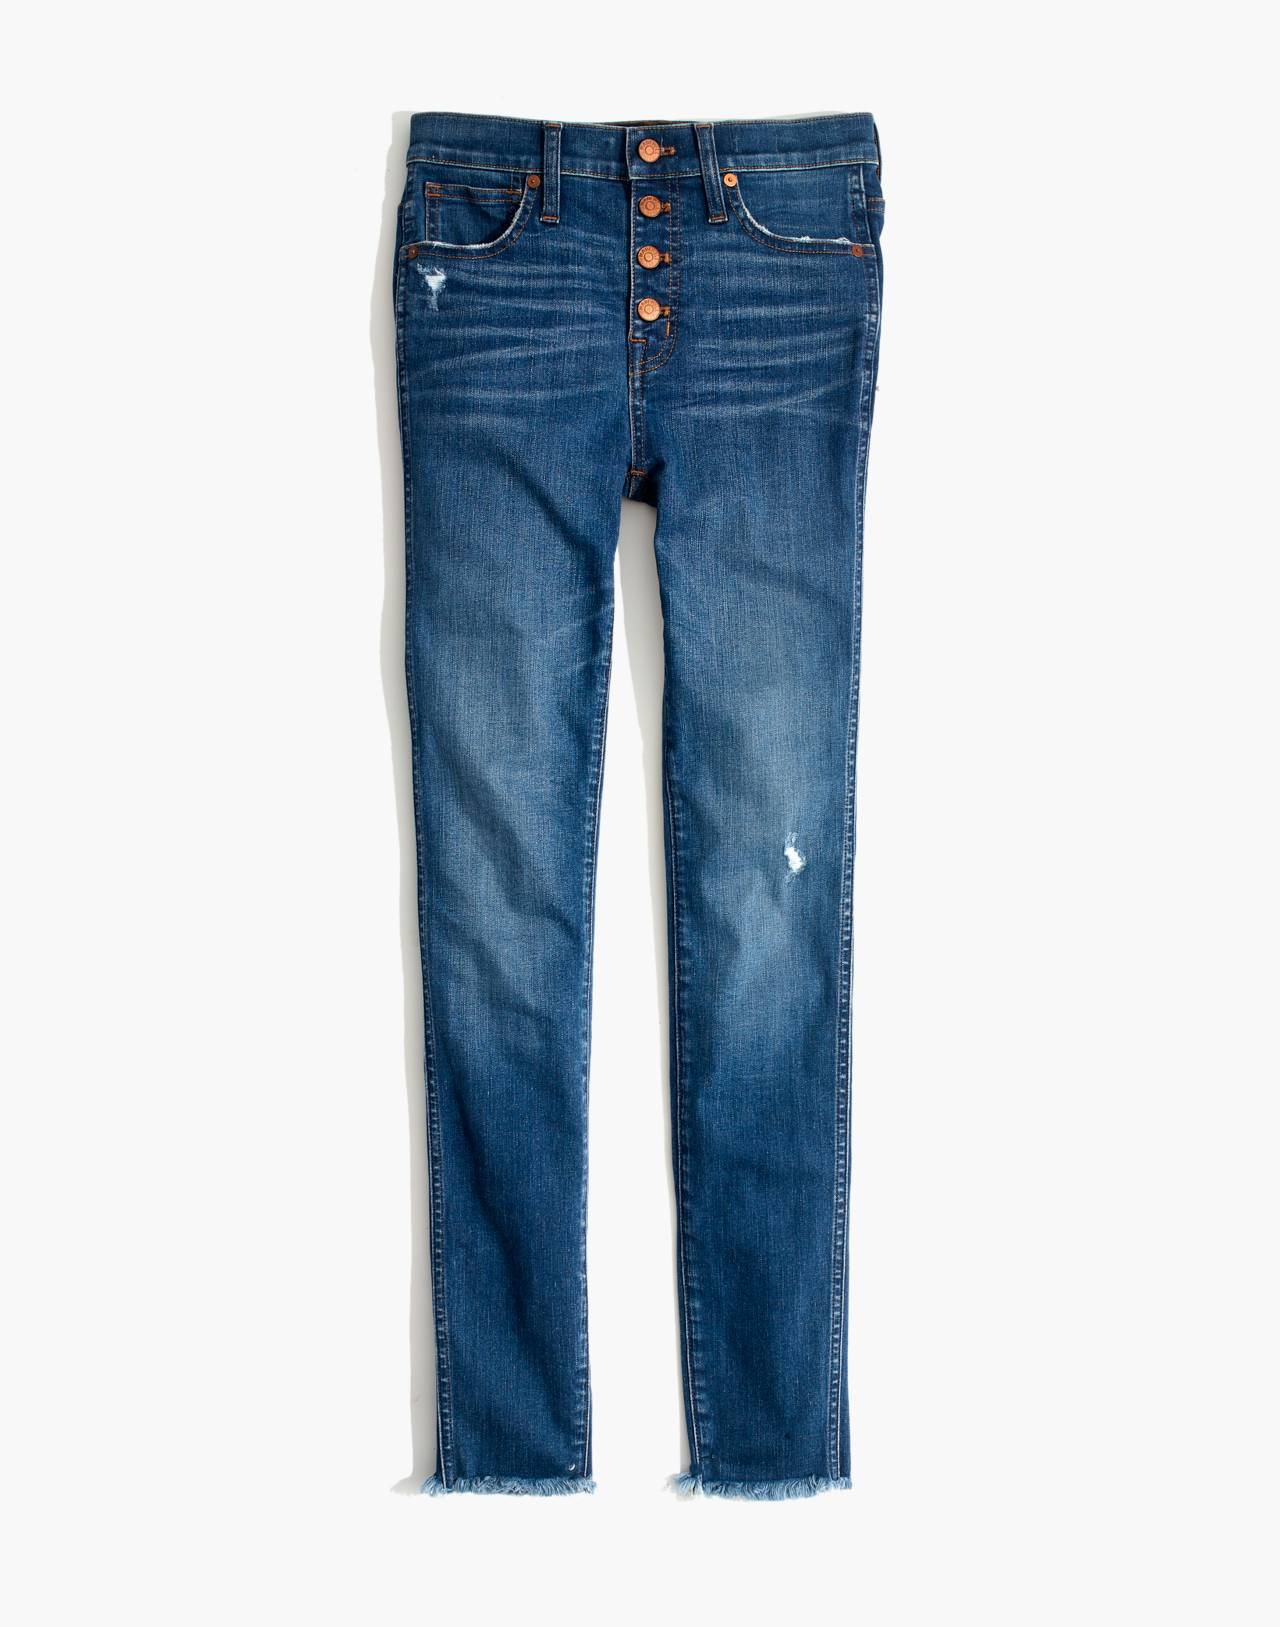 """10"""" High-Rise Skinny Jeans in Hanna Wash in hanna wash image 4"""